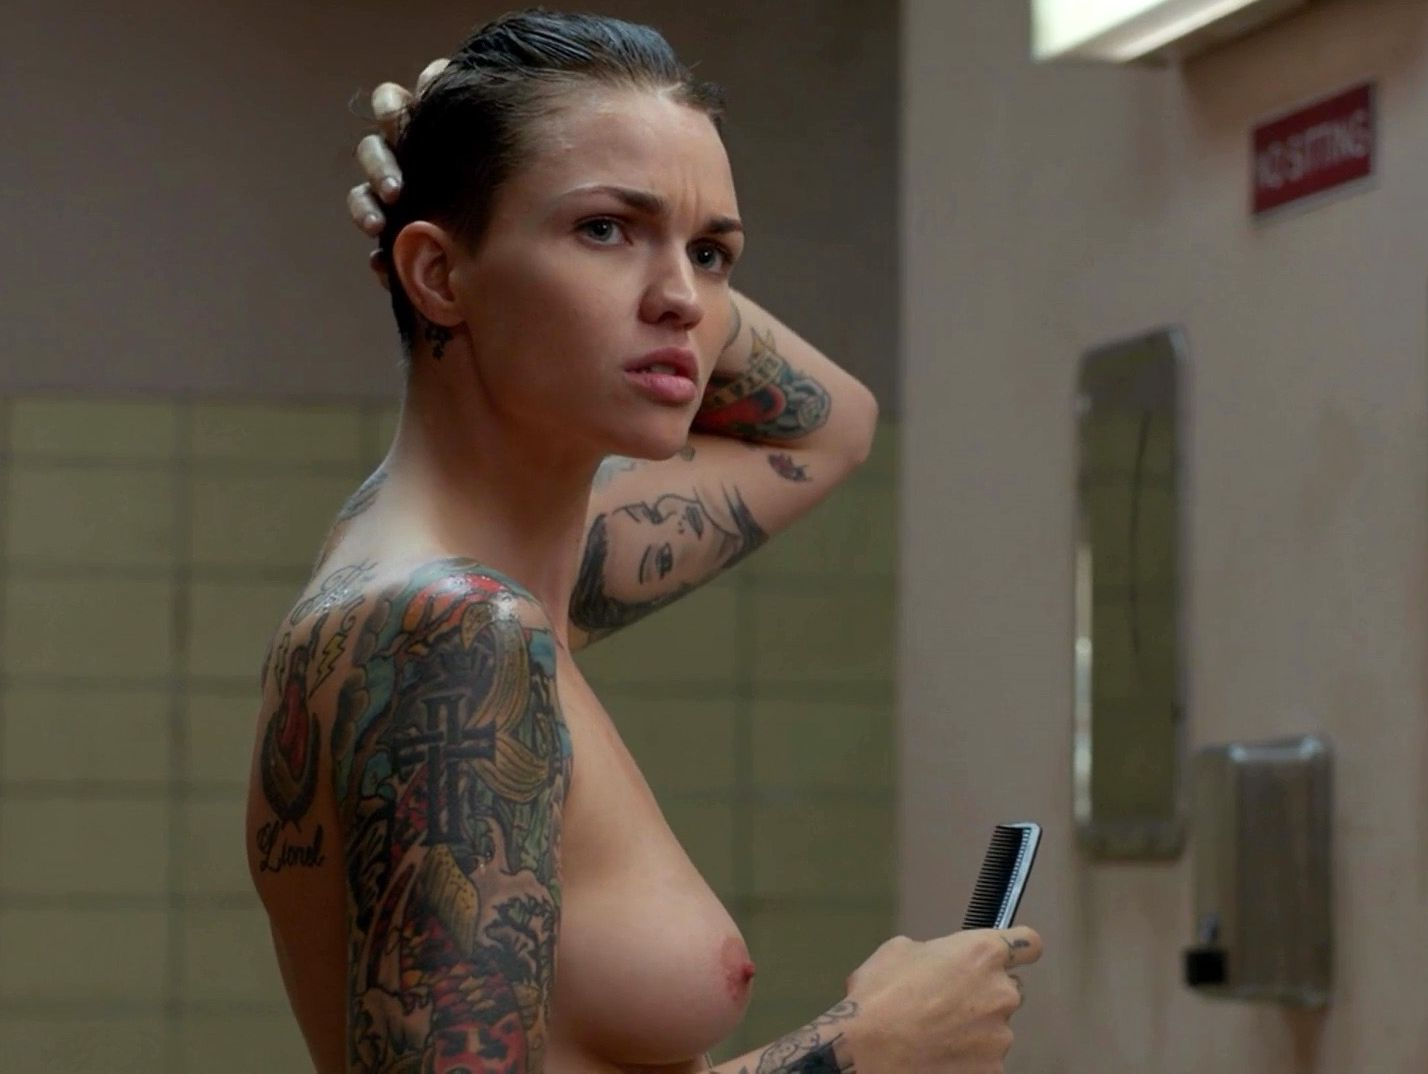 Taylor schilling nude topless and ruby rose nude butt and topless